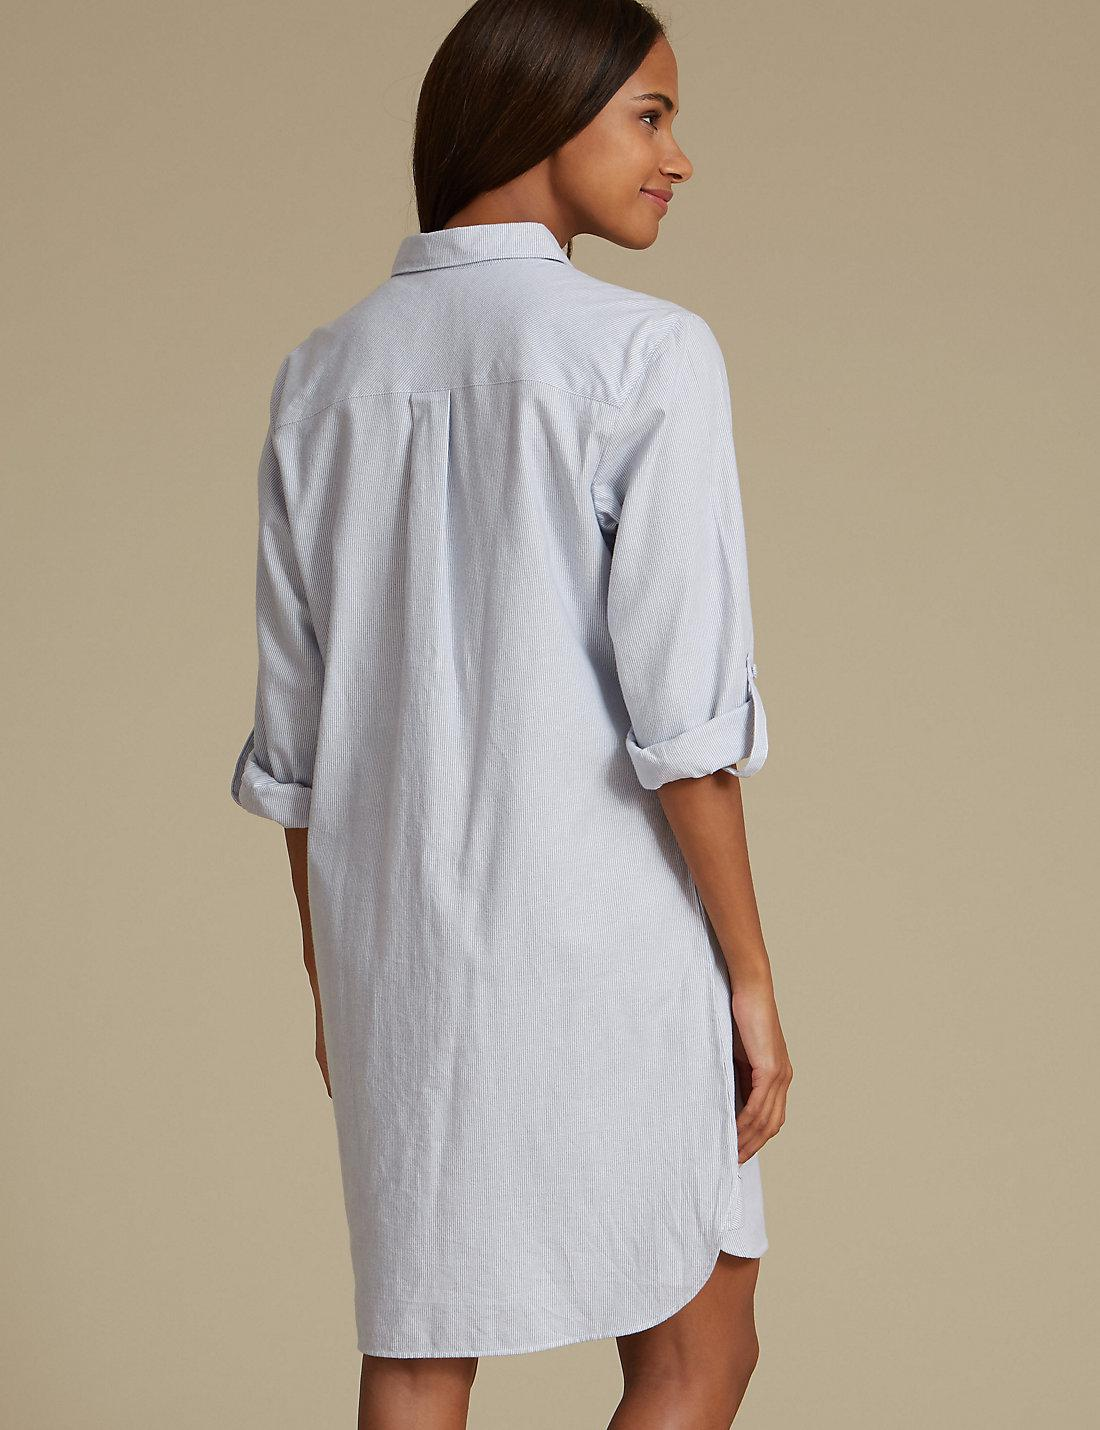 27cbaf4f89 Lyst - Marks   Spencer Pure Cotton Striped Nightshirt in Blue